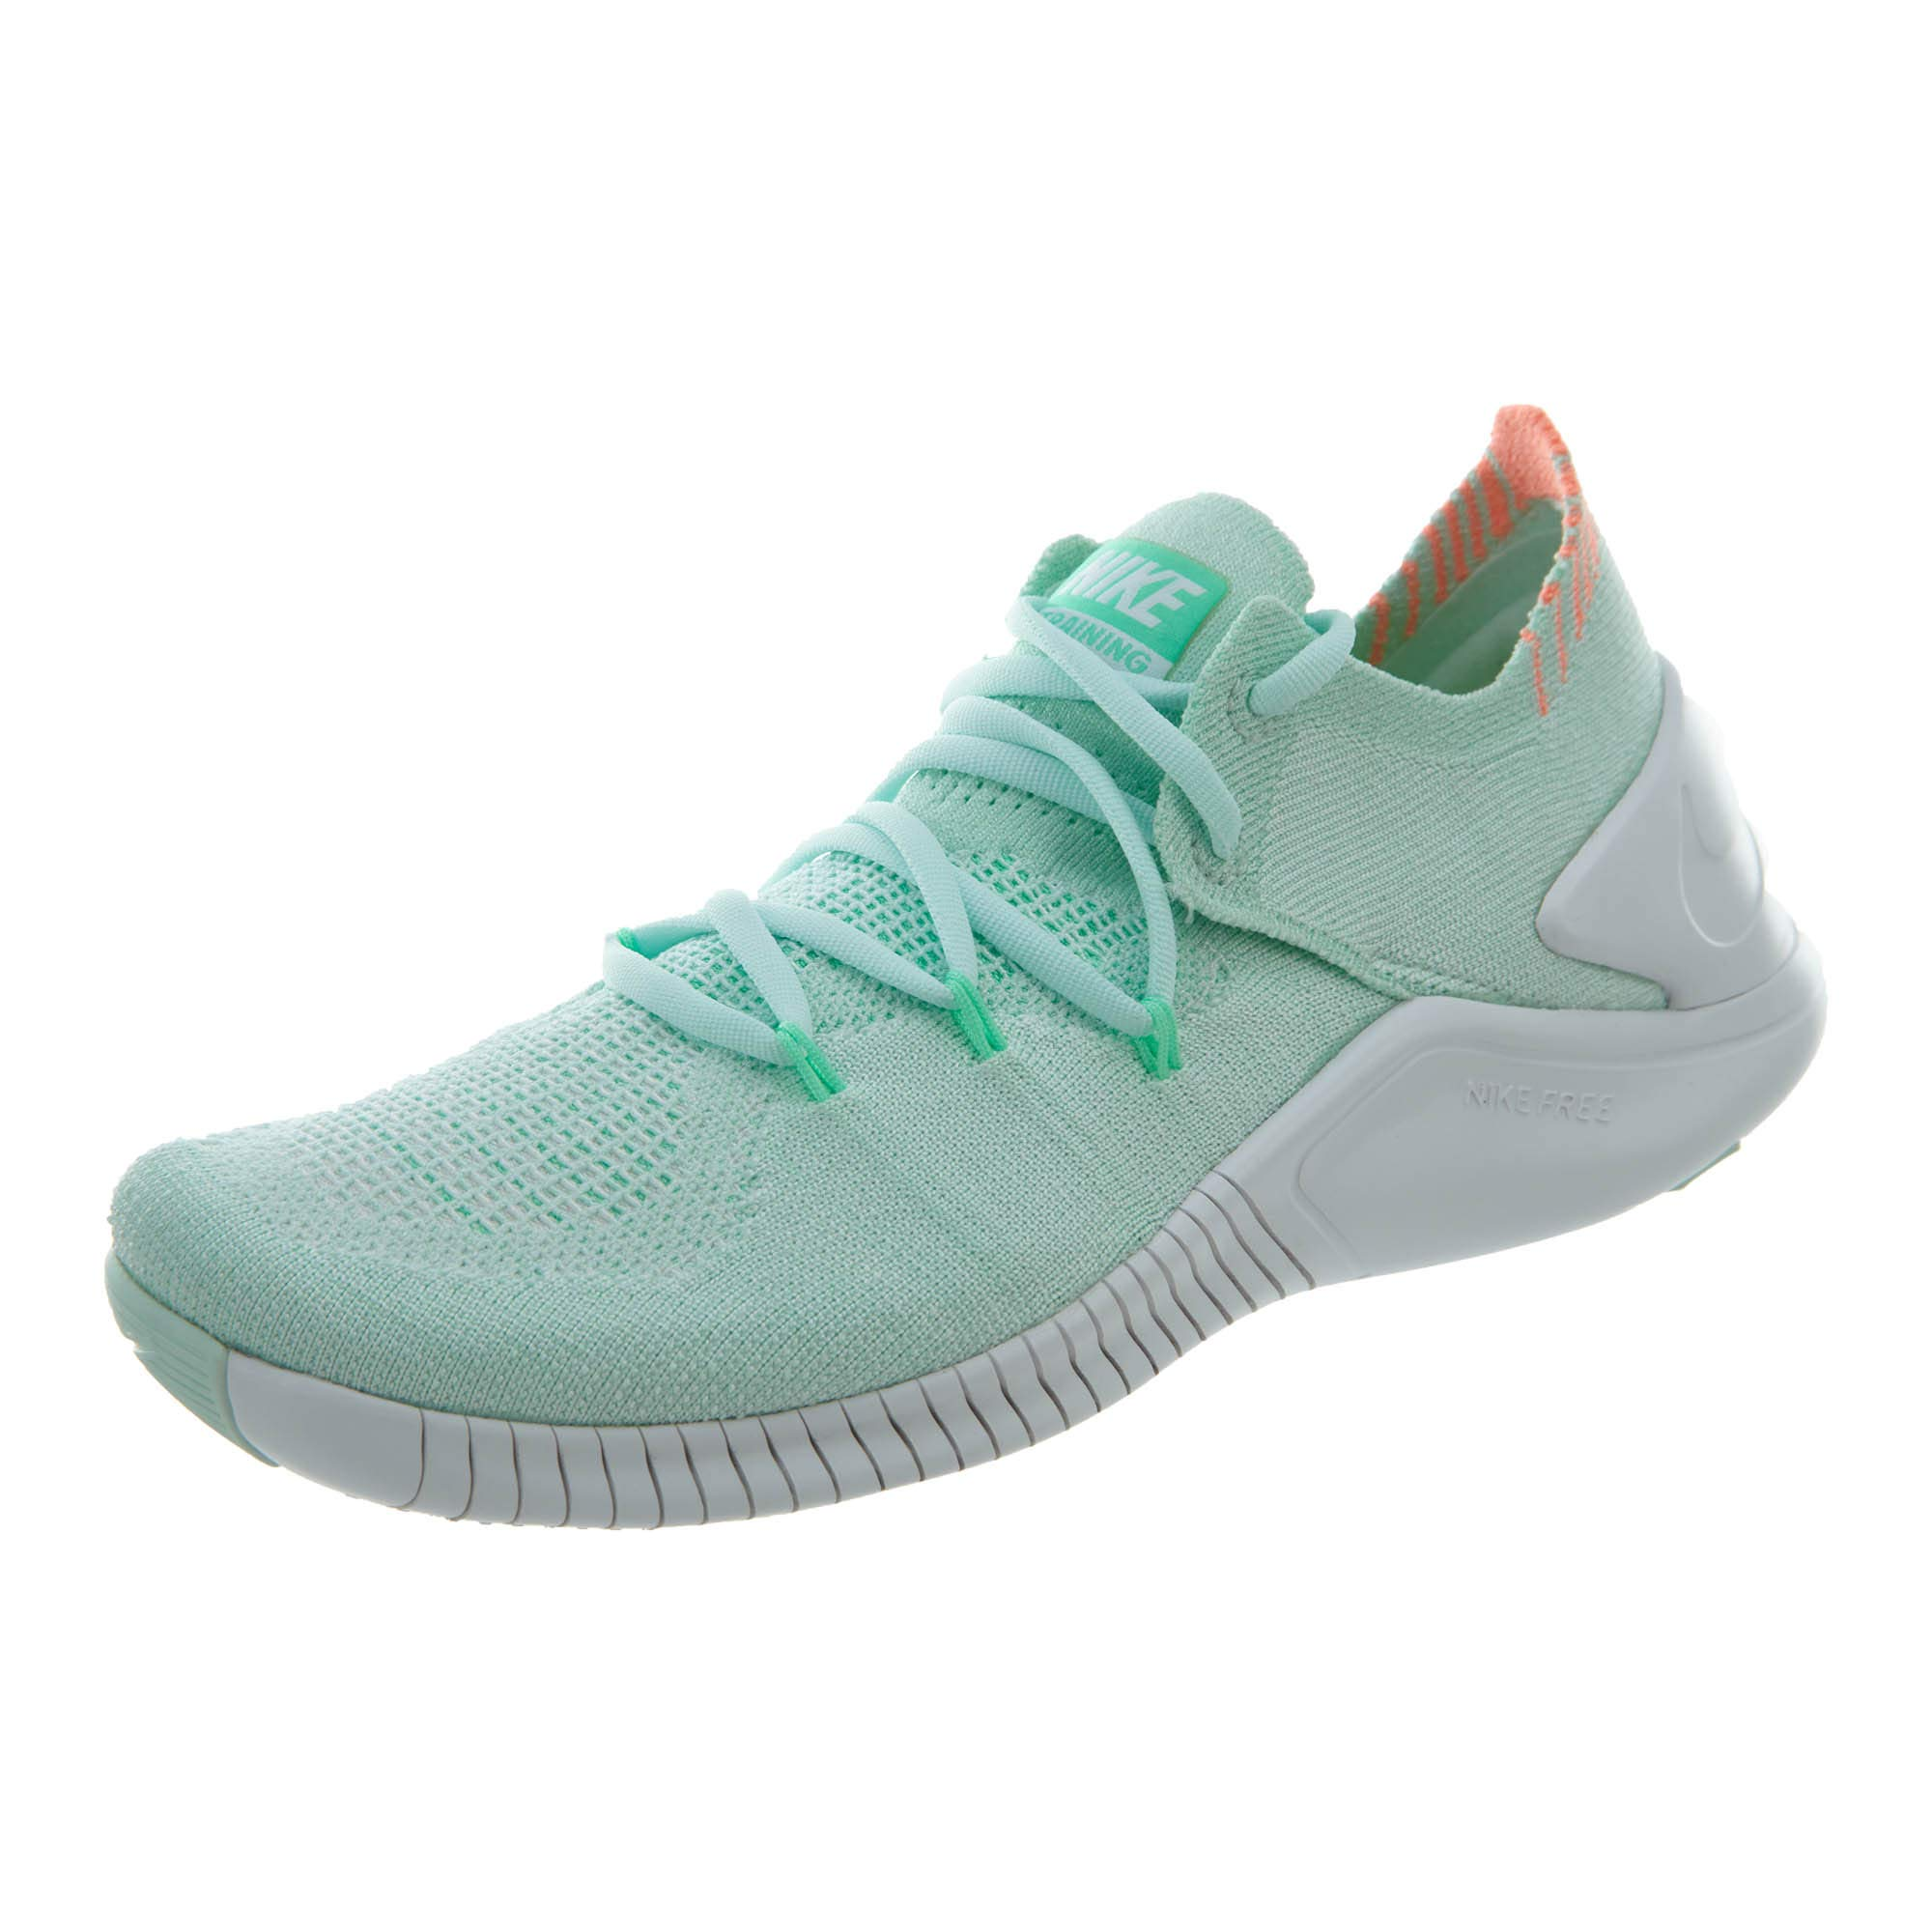 low priced 103dd 41389 Galleon - Nike Women s WMNS Free TR Flyknit 3, Igloo White-Crimson Pulse,  7.5 US